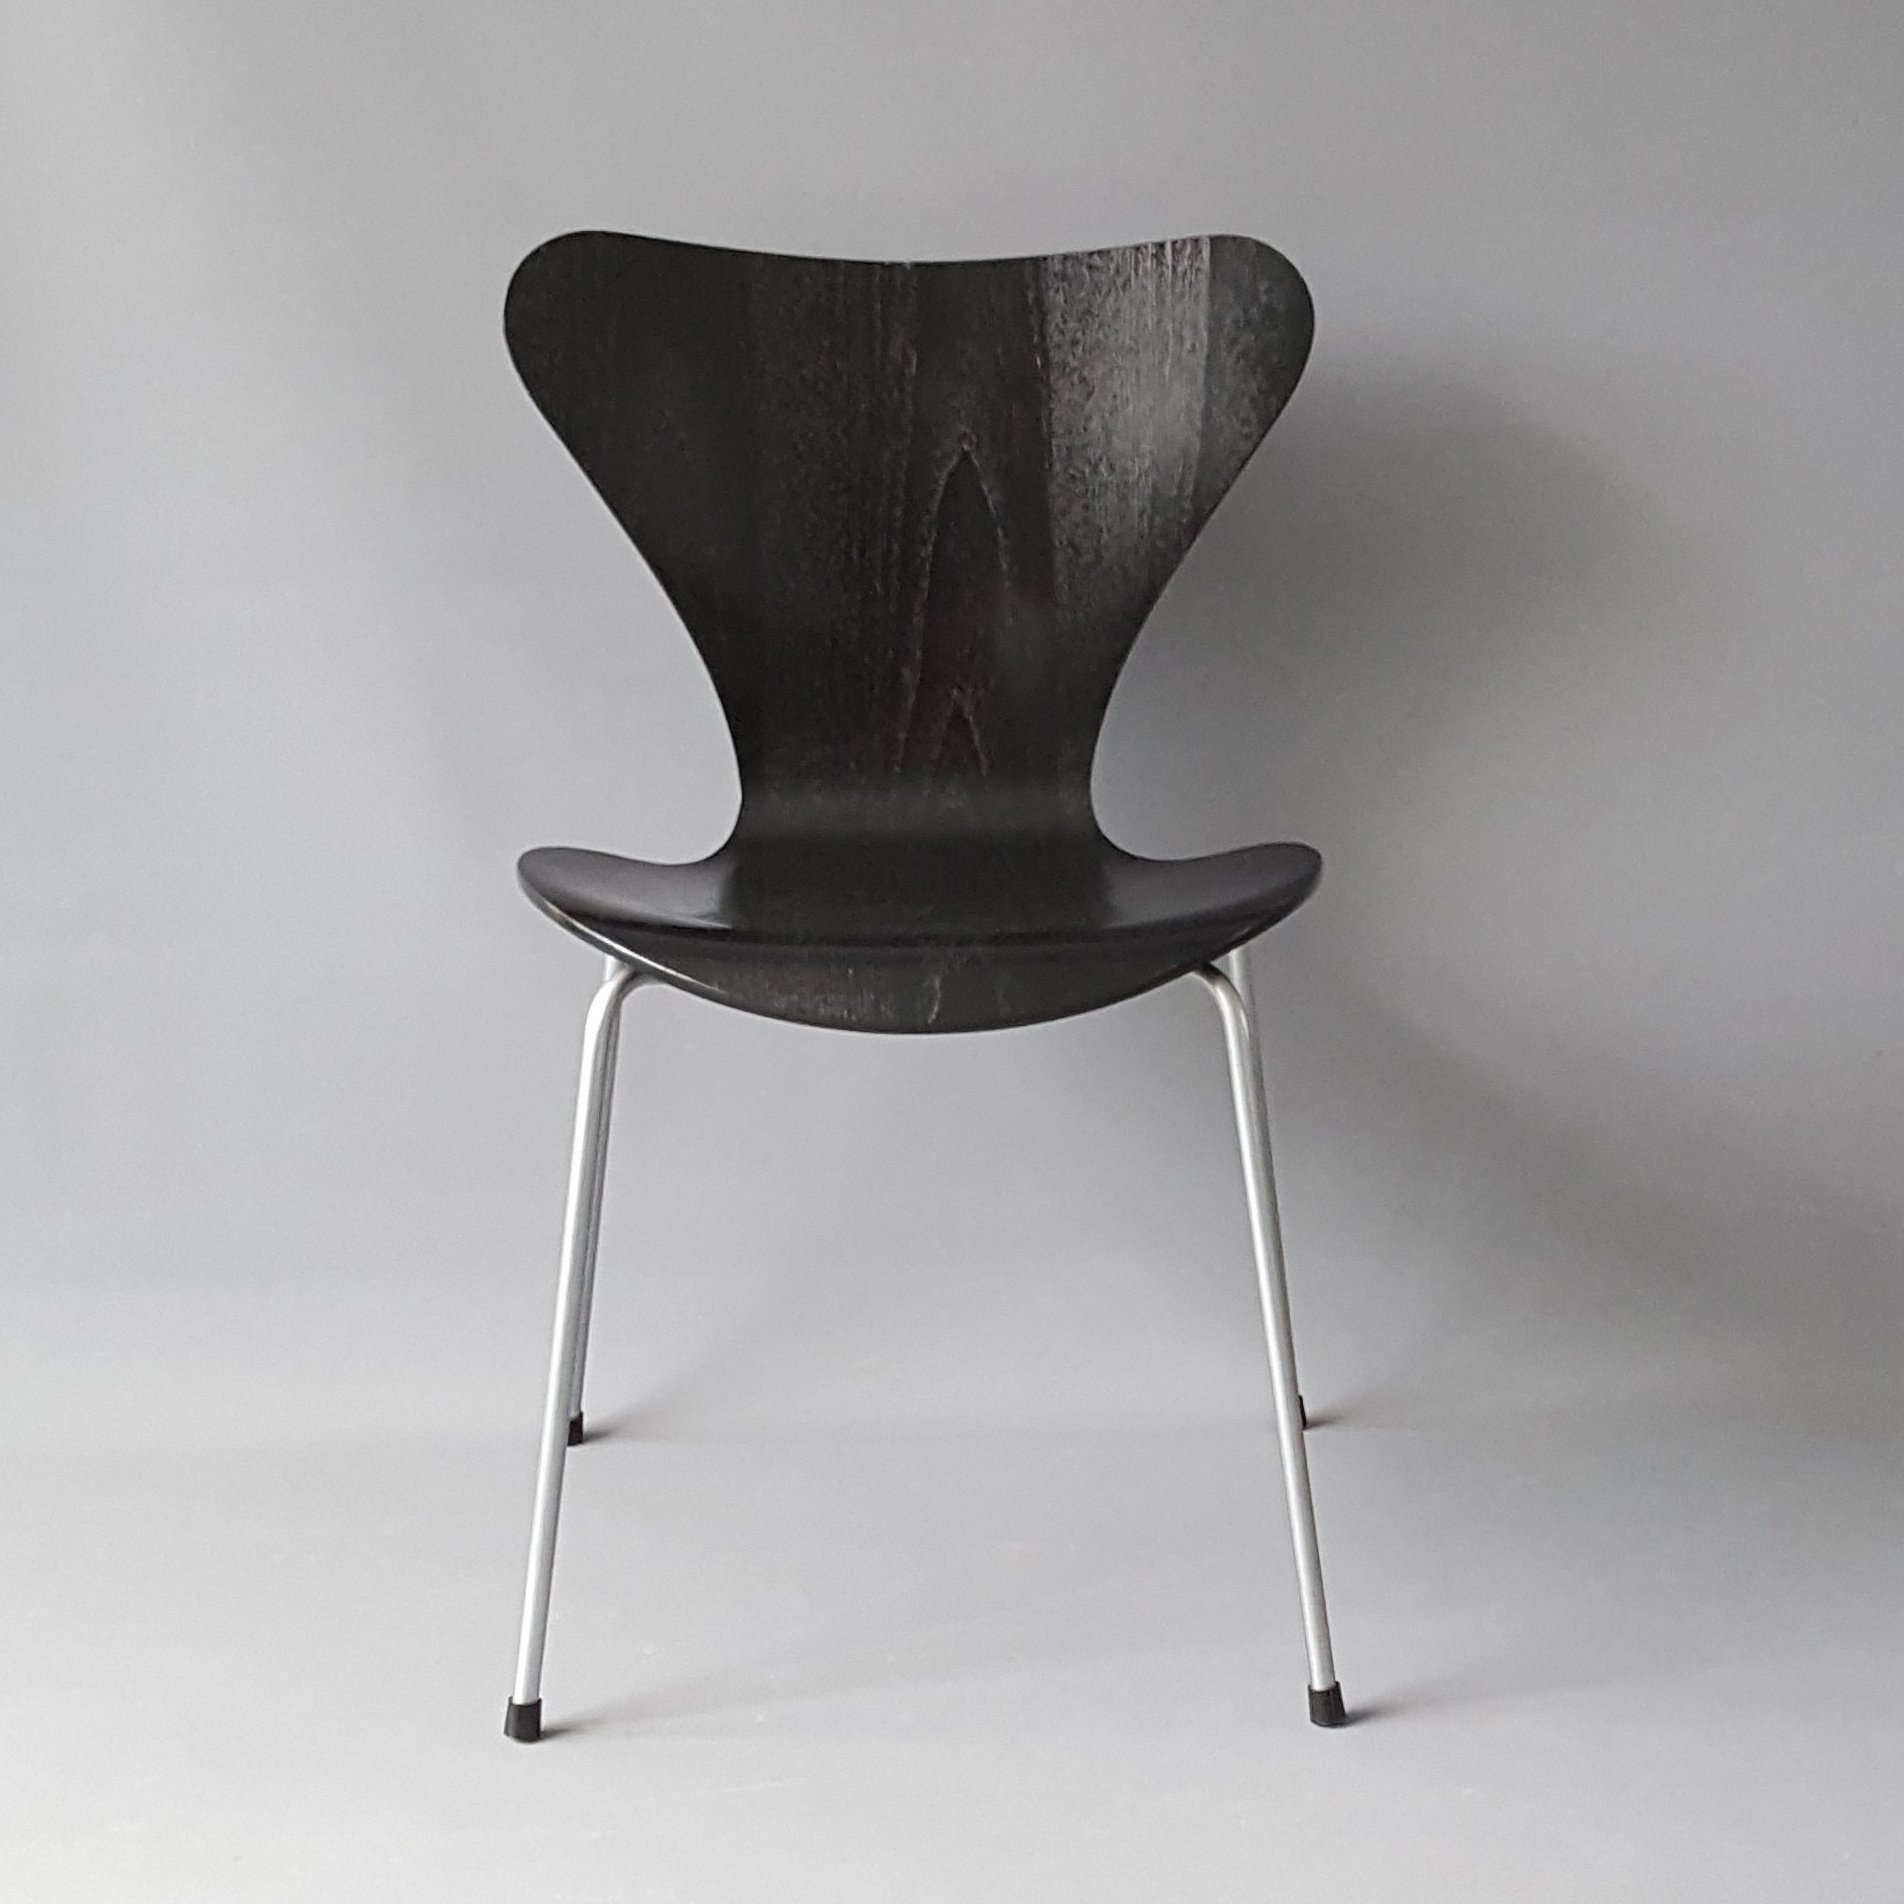 Dining Chair 3107 By Arne Jacobsen For Fritz Hansen